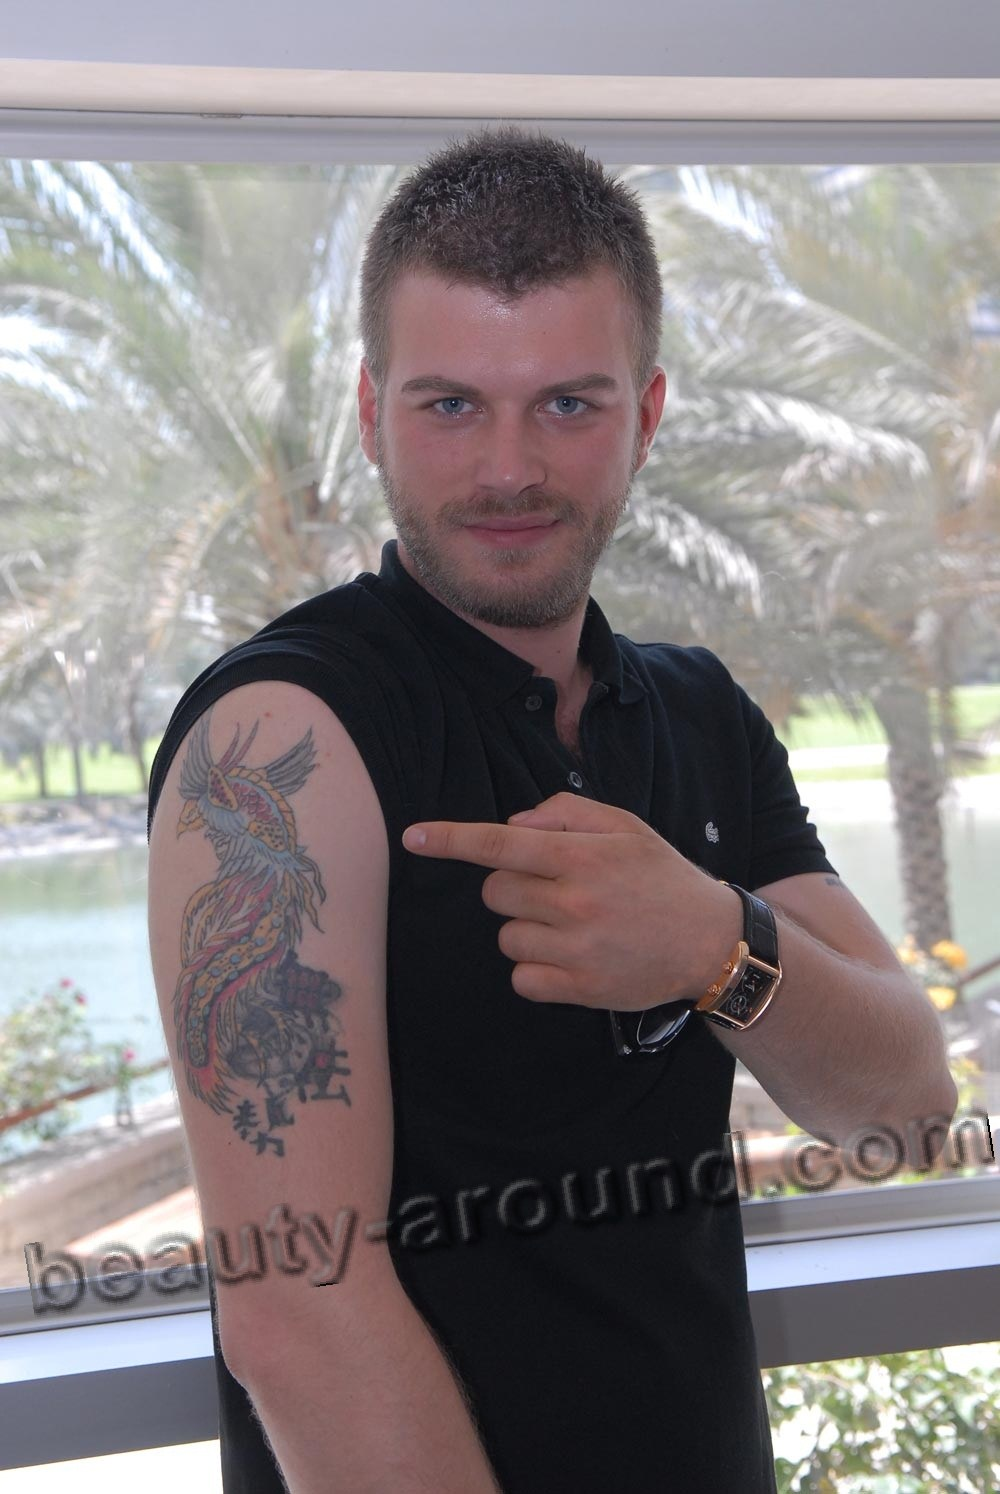 Kivanc Tatlitug Turkish actor, model,photo with a tattoo